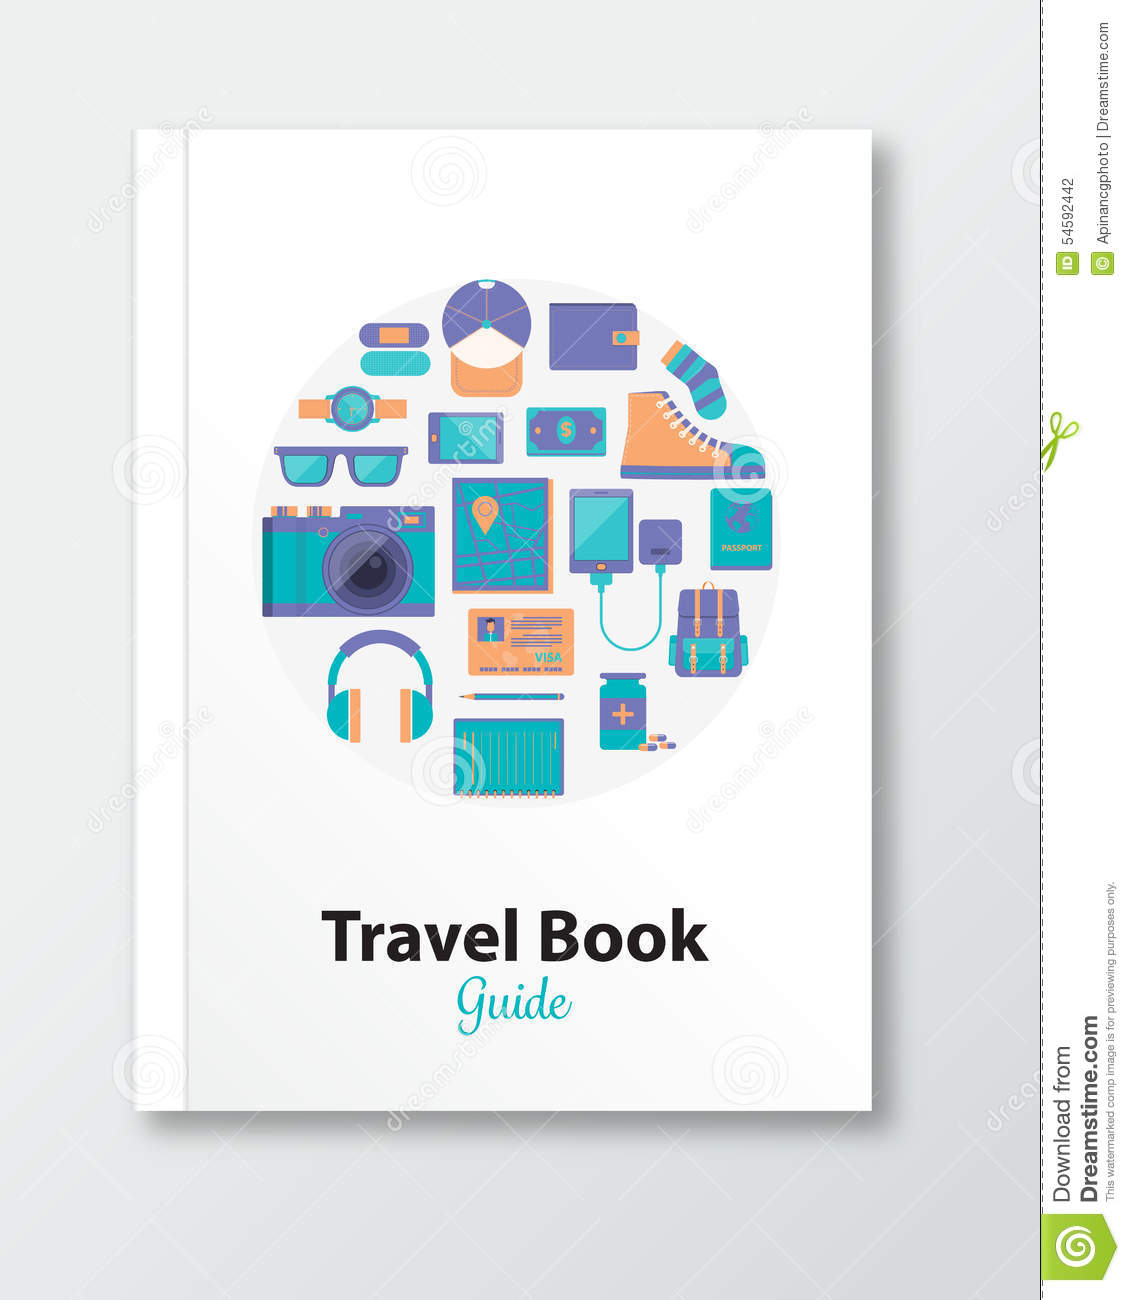 Book Cover Illustration Contract ~ Travel book cover design template stock illustration